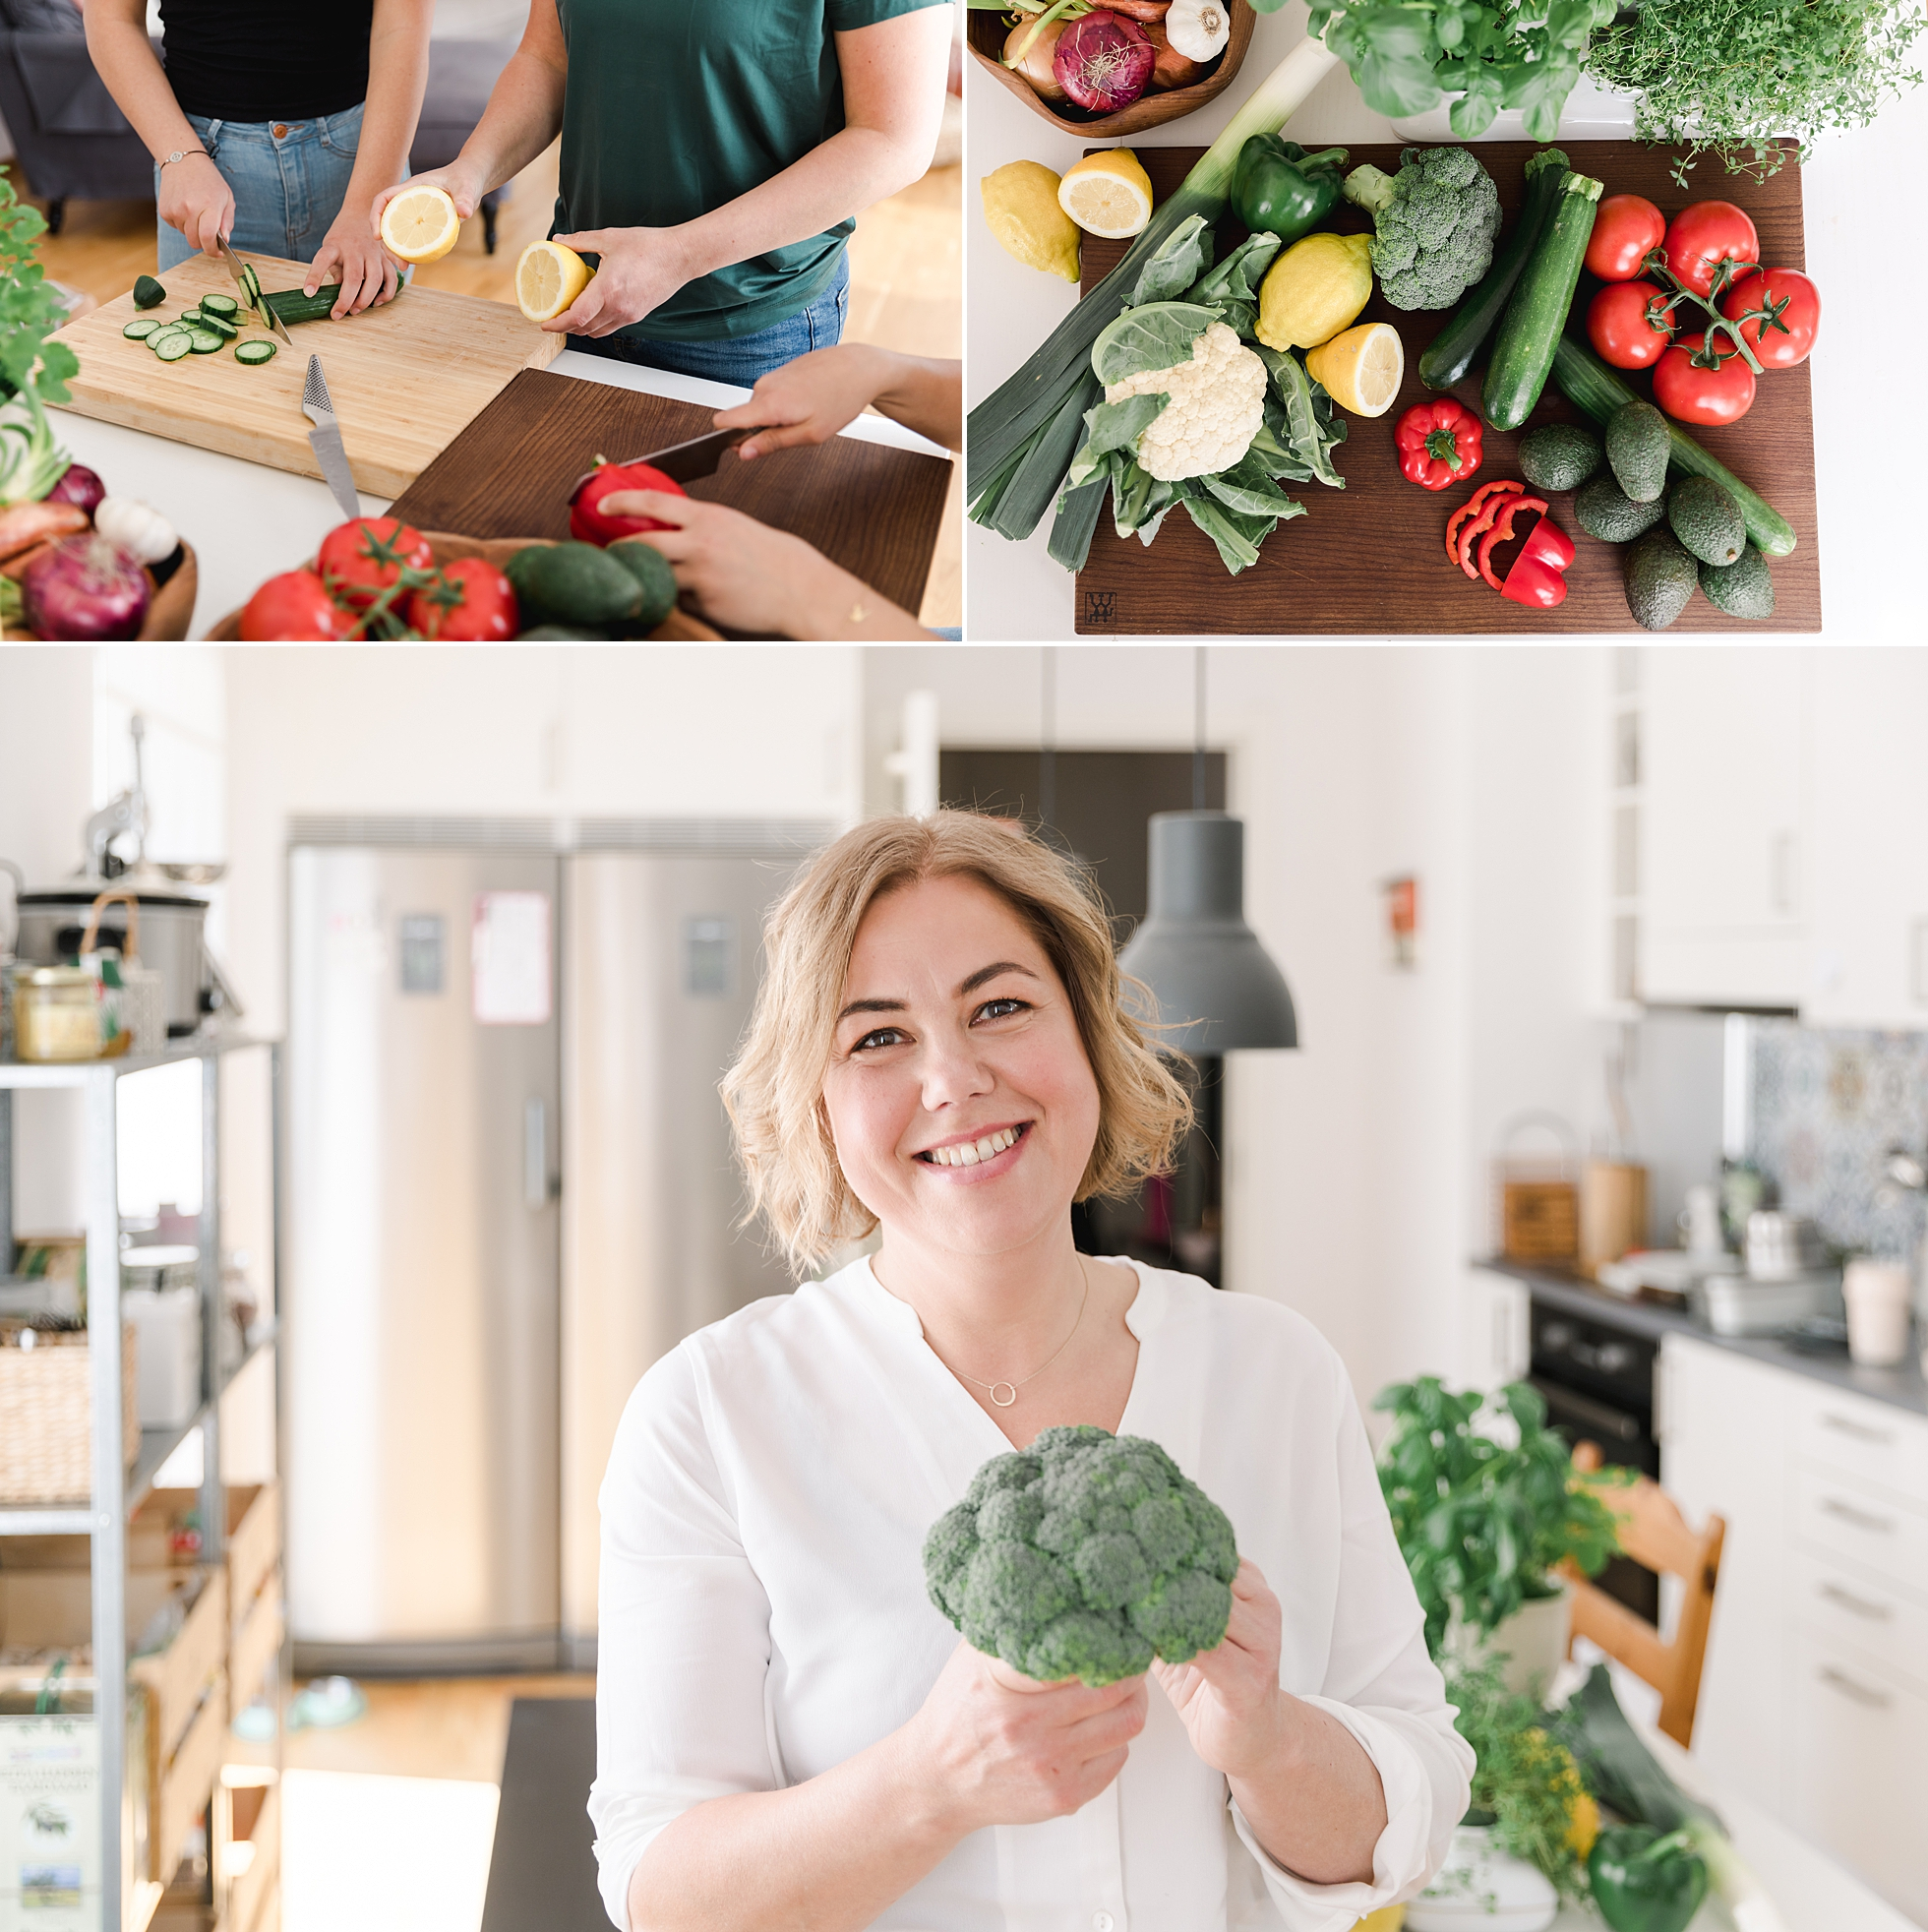 A collage of a woman holding broccoli and preparing healthy food